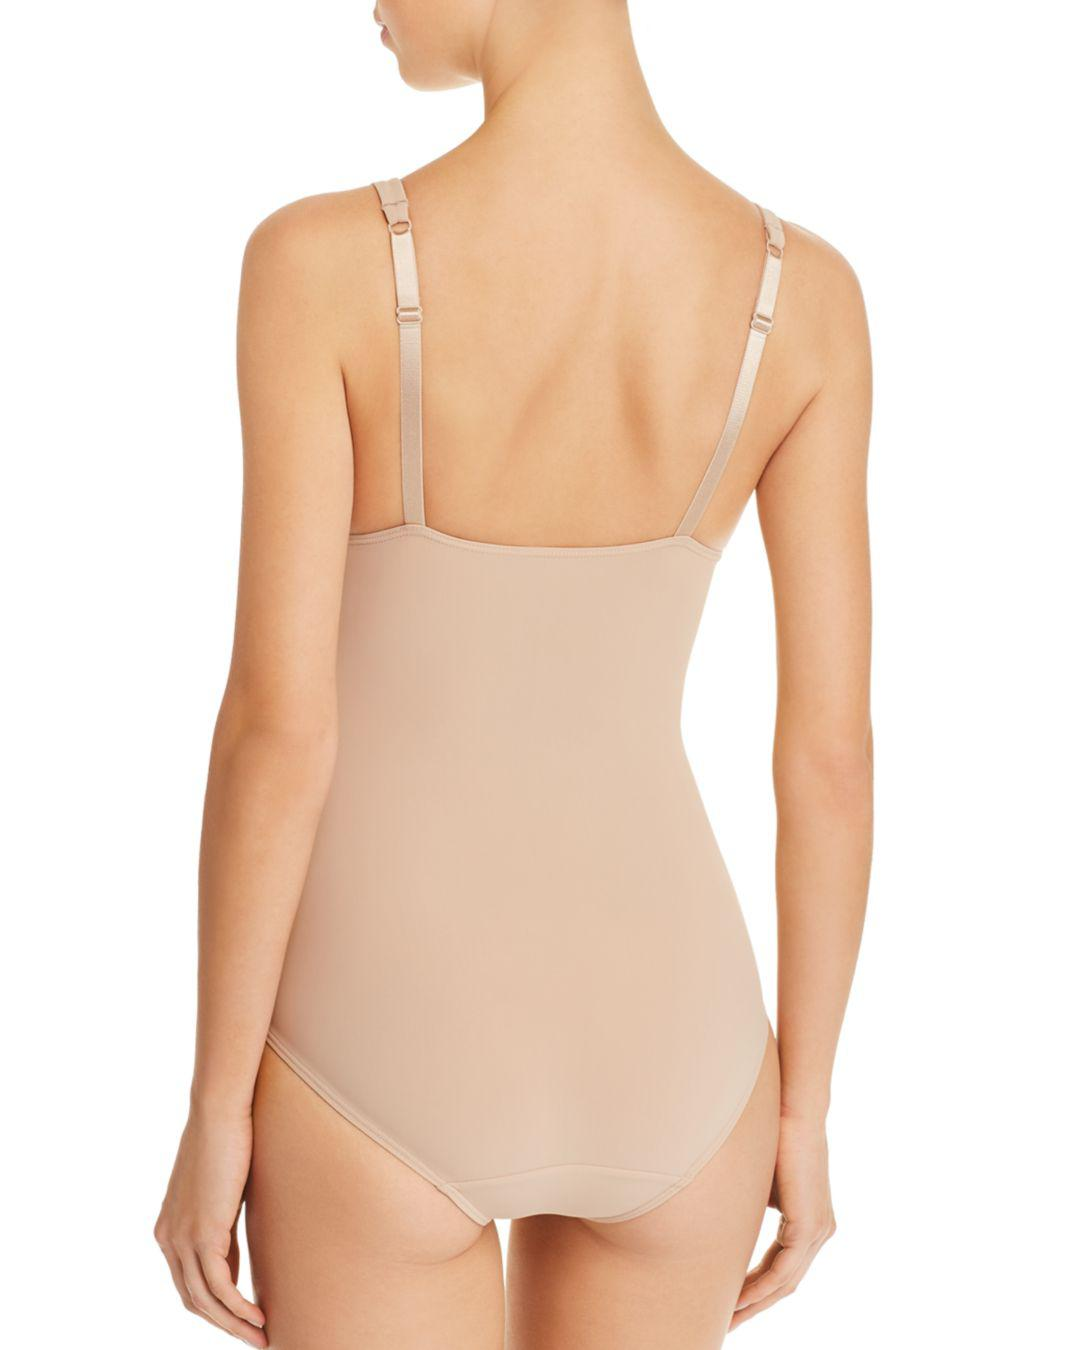 493af4d612 Lyst - Wacoal Slenderness All-in-one Bodysuit in Natural - Save 55%